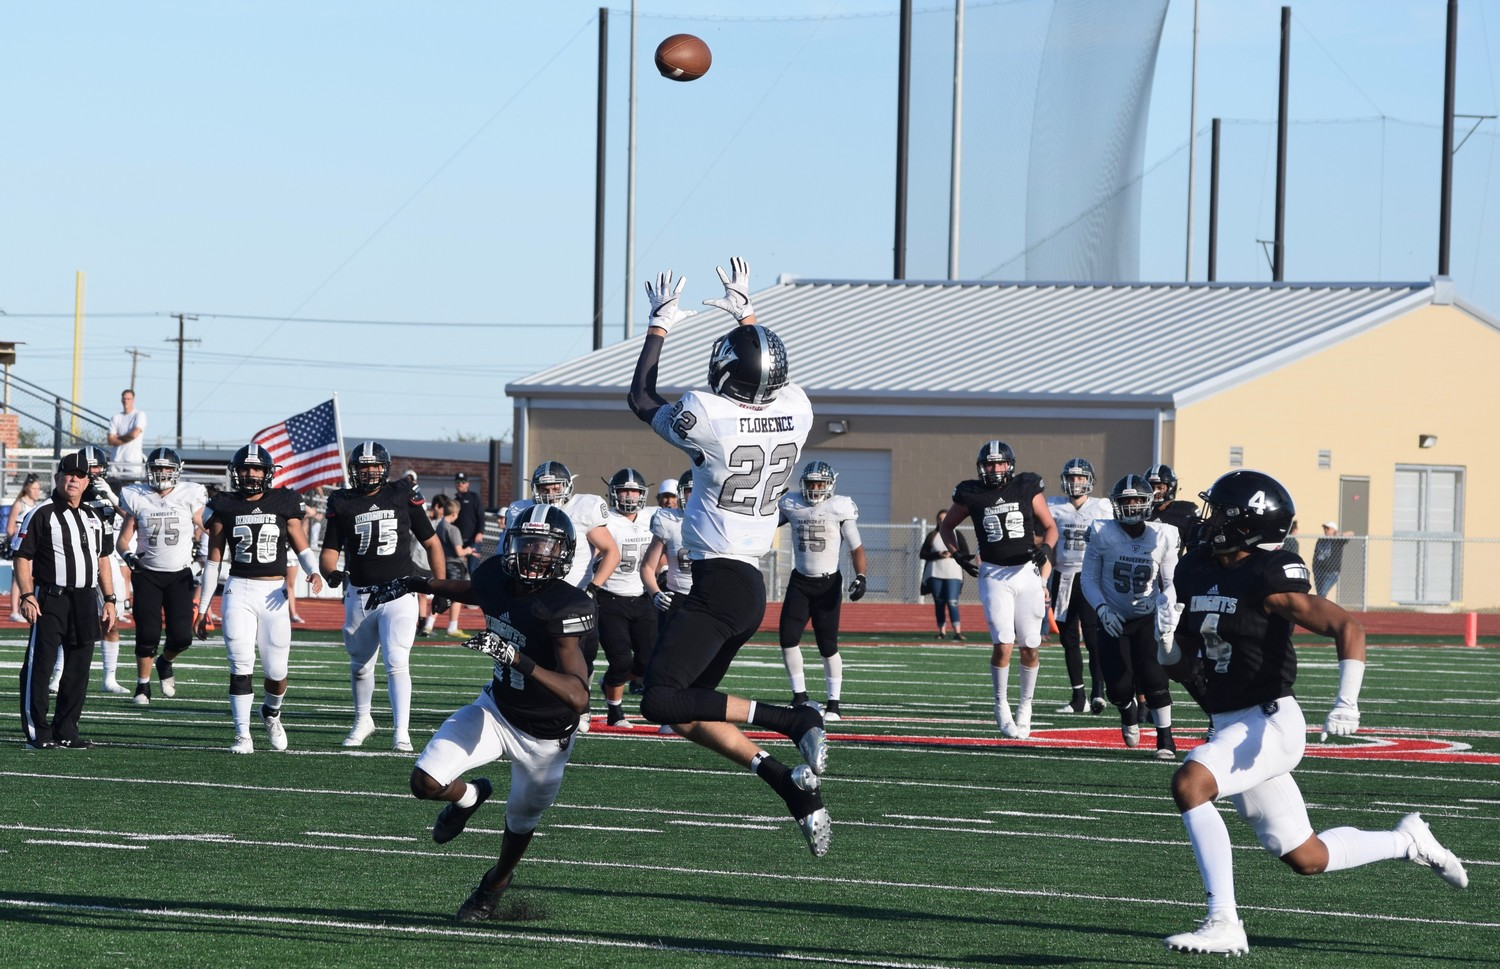 Justin Florence and Vandegrift lost to Cibolo Steele 36-18 in the area round of the playoffs Friday in New Braunfels.